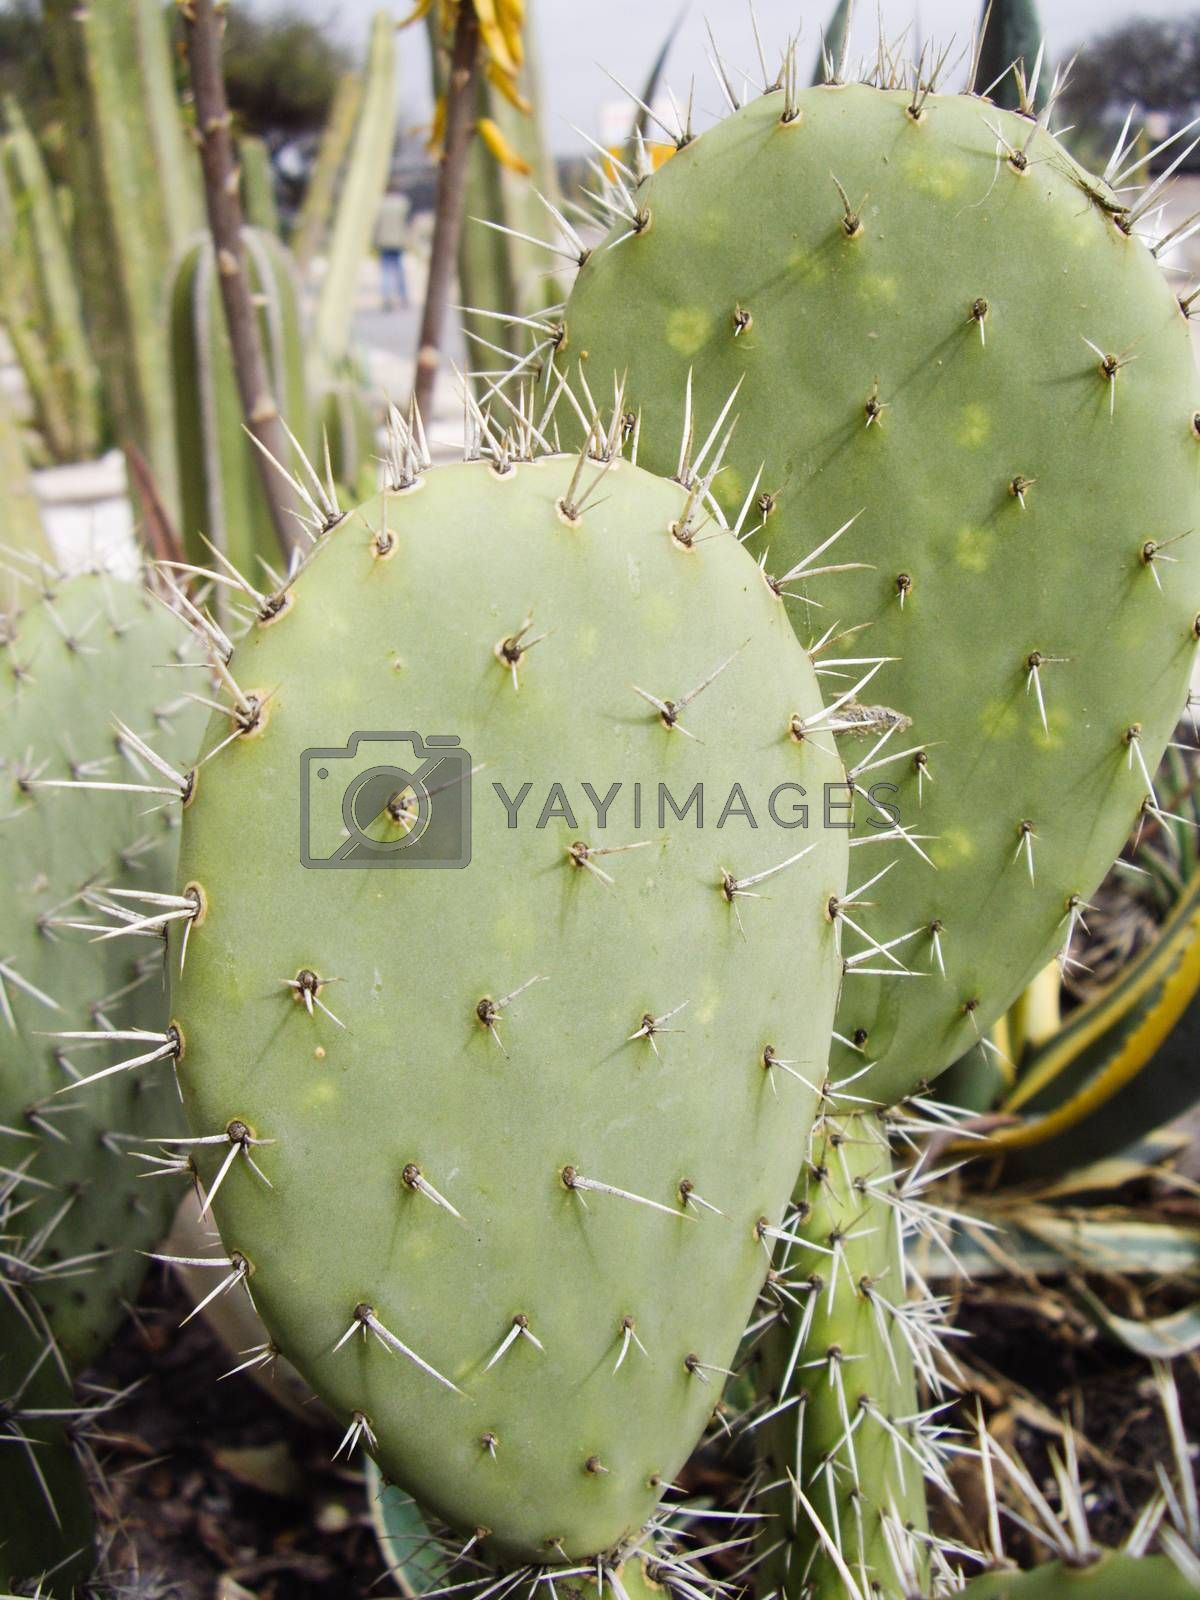 Spines on Cactus by emattil